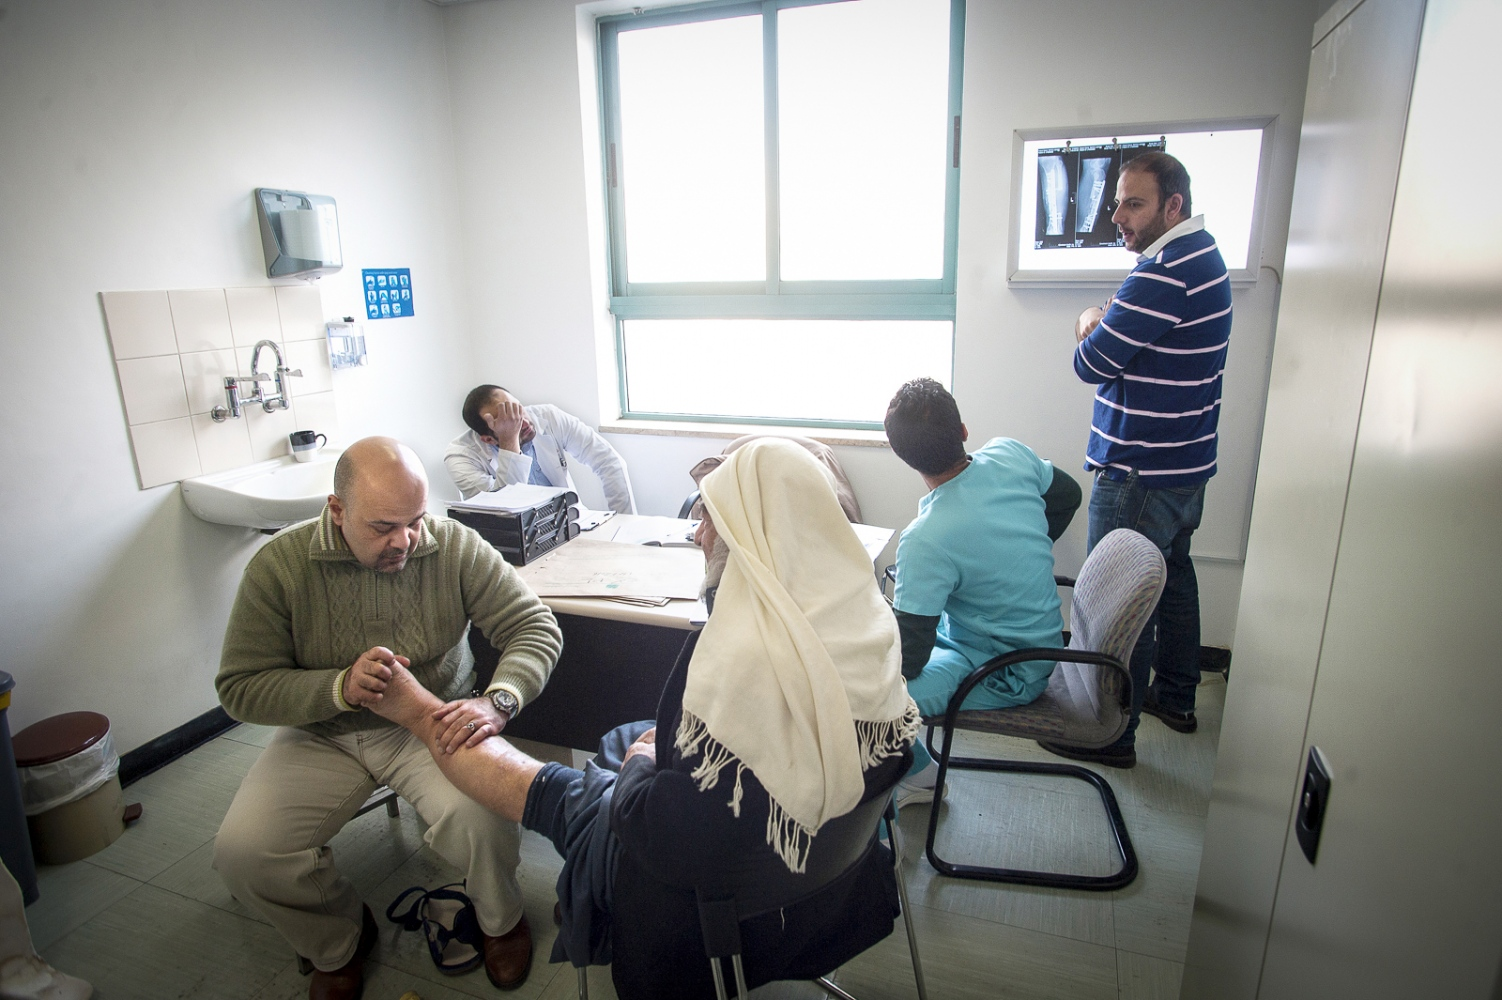 43 year old Iraq born Orthopedic Surgeon Dr Ali AlAni examines a patient to access the ongoing treatment that might be required, He's accompanied by Jordanian GP Zaid Sabeeleish, Physiotherapist Saleem Omar and fellow Orthopedic Surgeon Hanna Janho all from Amman in Jordan.